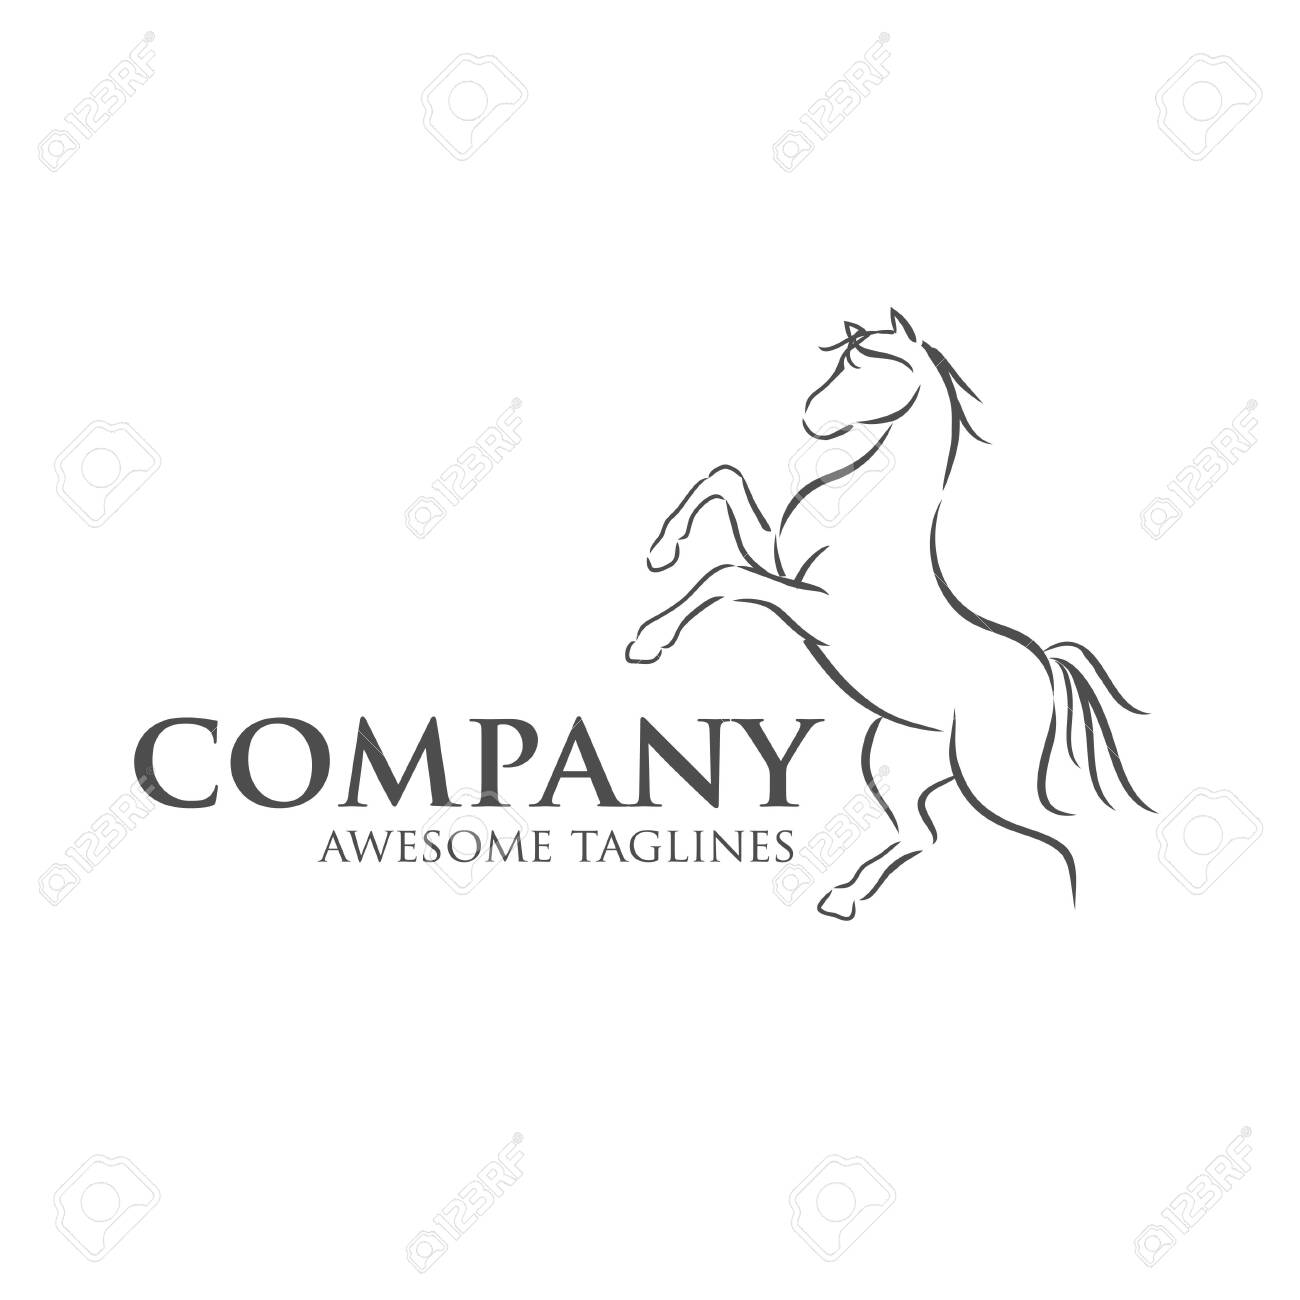 Simple Horse Vector Illustration Best For Sport Races Logo Royalty Free Cliparts Vectors And Stock Illustration Image 137539134